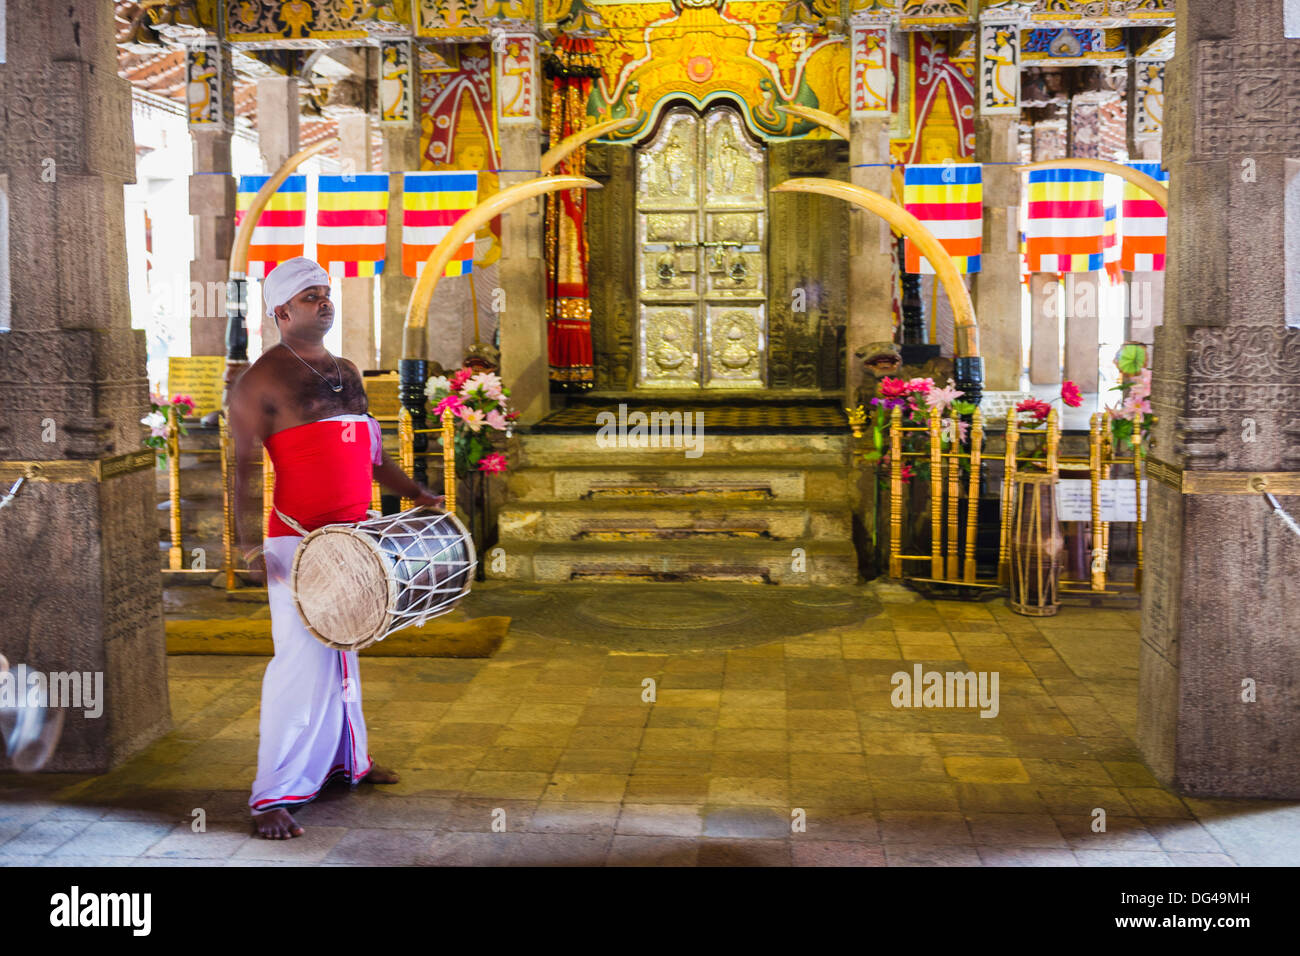 Drummer drumming at Temple of the Sacred Tooth Relic (Temple of the Tooth) (Sri Dalada Maligawa) in Kandy, Sri Lanka, Asia - Stock Image